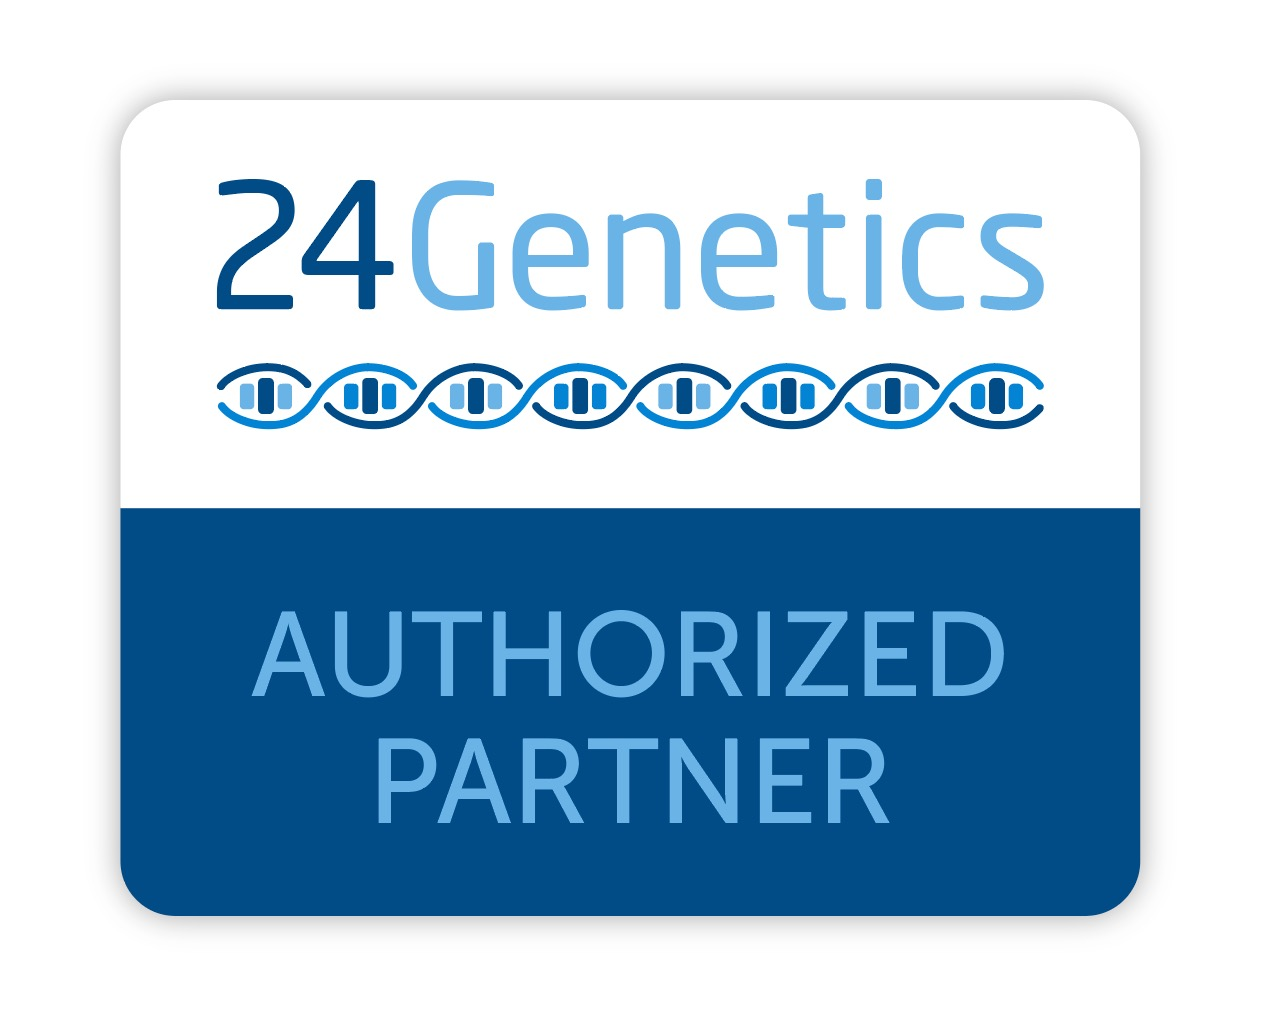 24Genetics-Partner-CellsGenetics